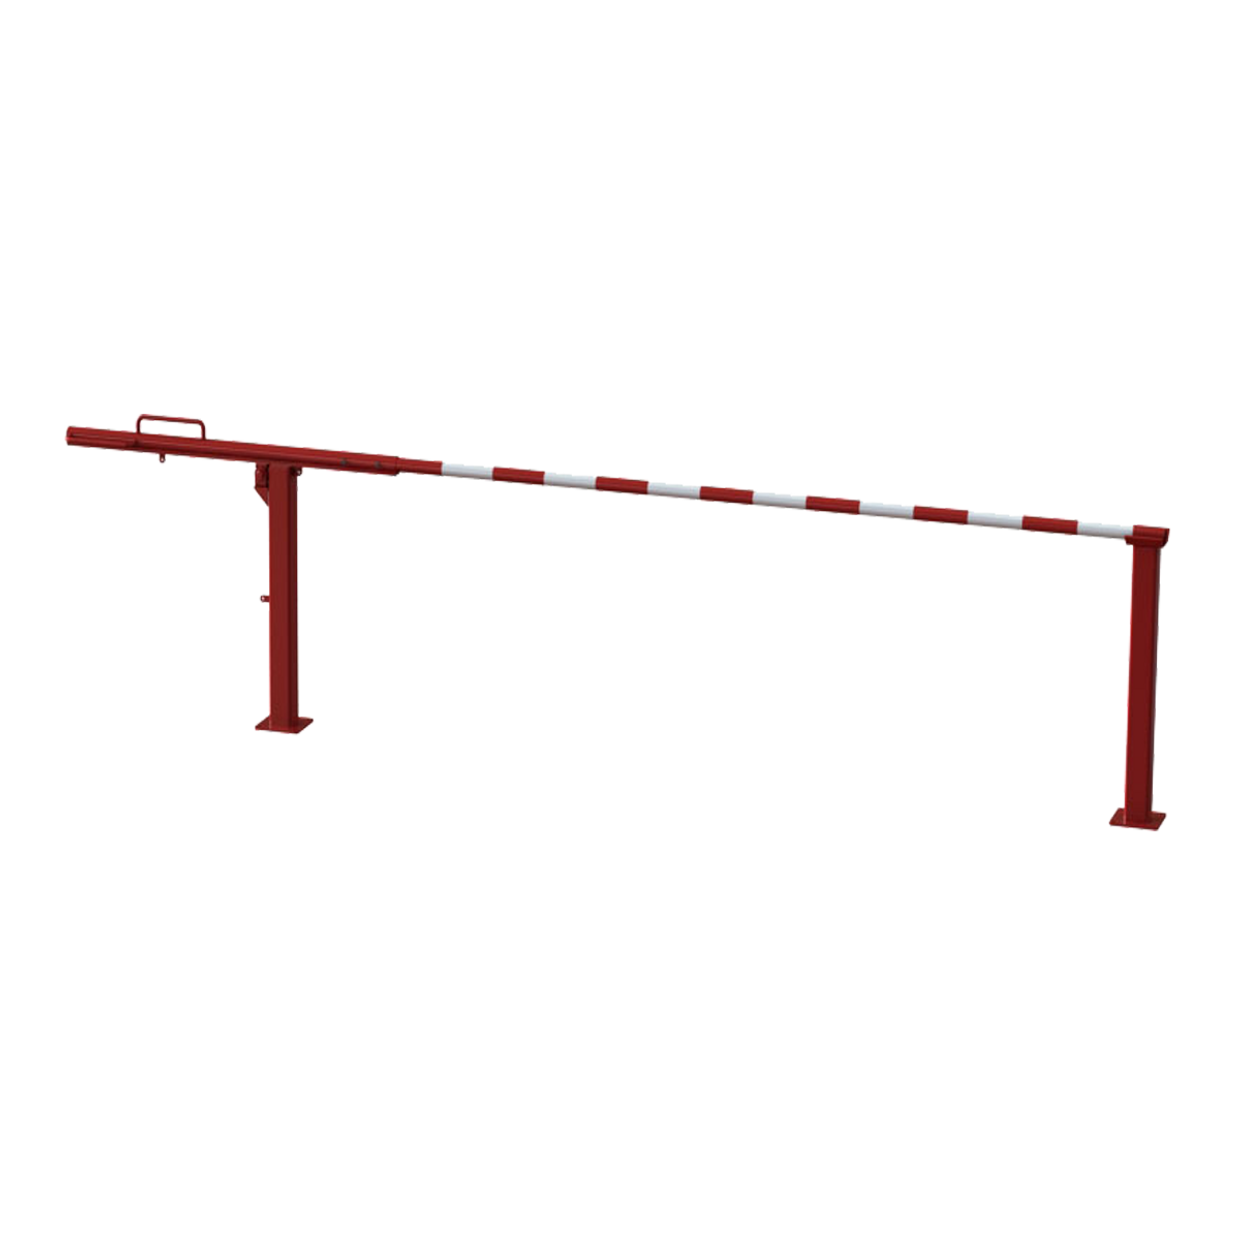 14000S-12 14000S-16 14000S-20 SENTINEL Manual Lift Barrier Gate Arm Surface Mount HERO